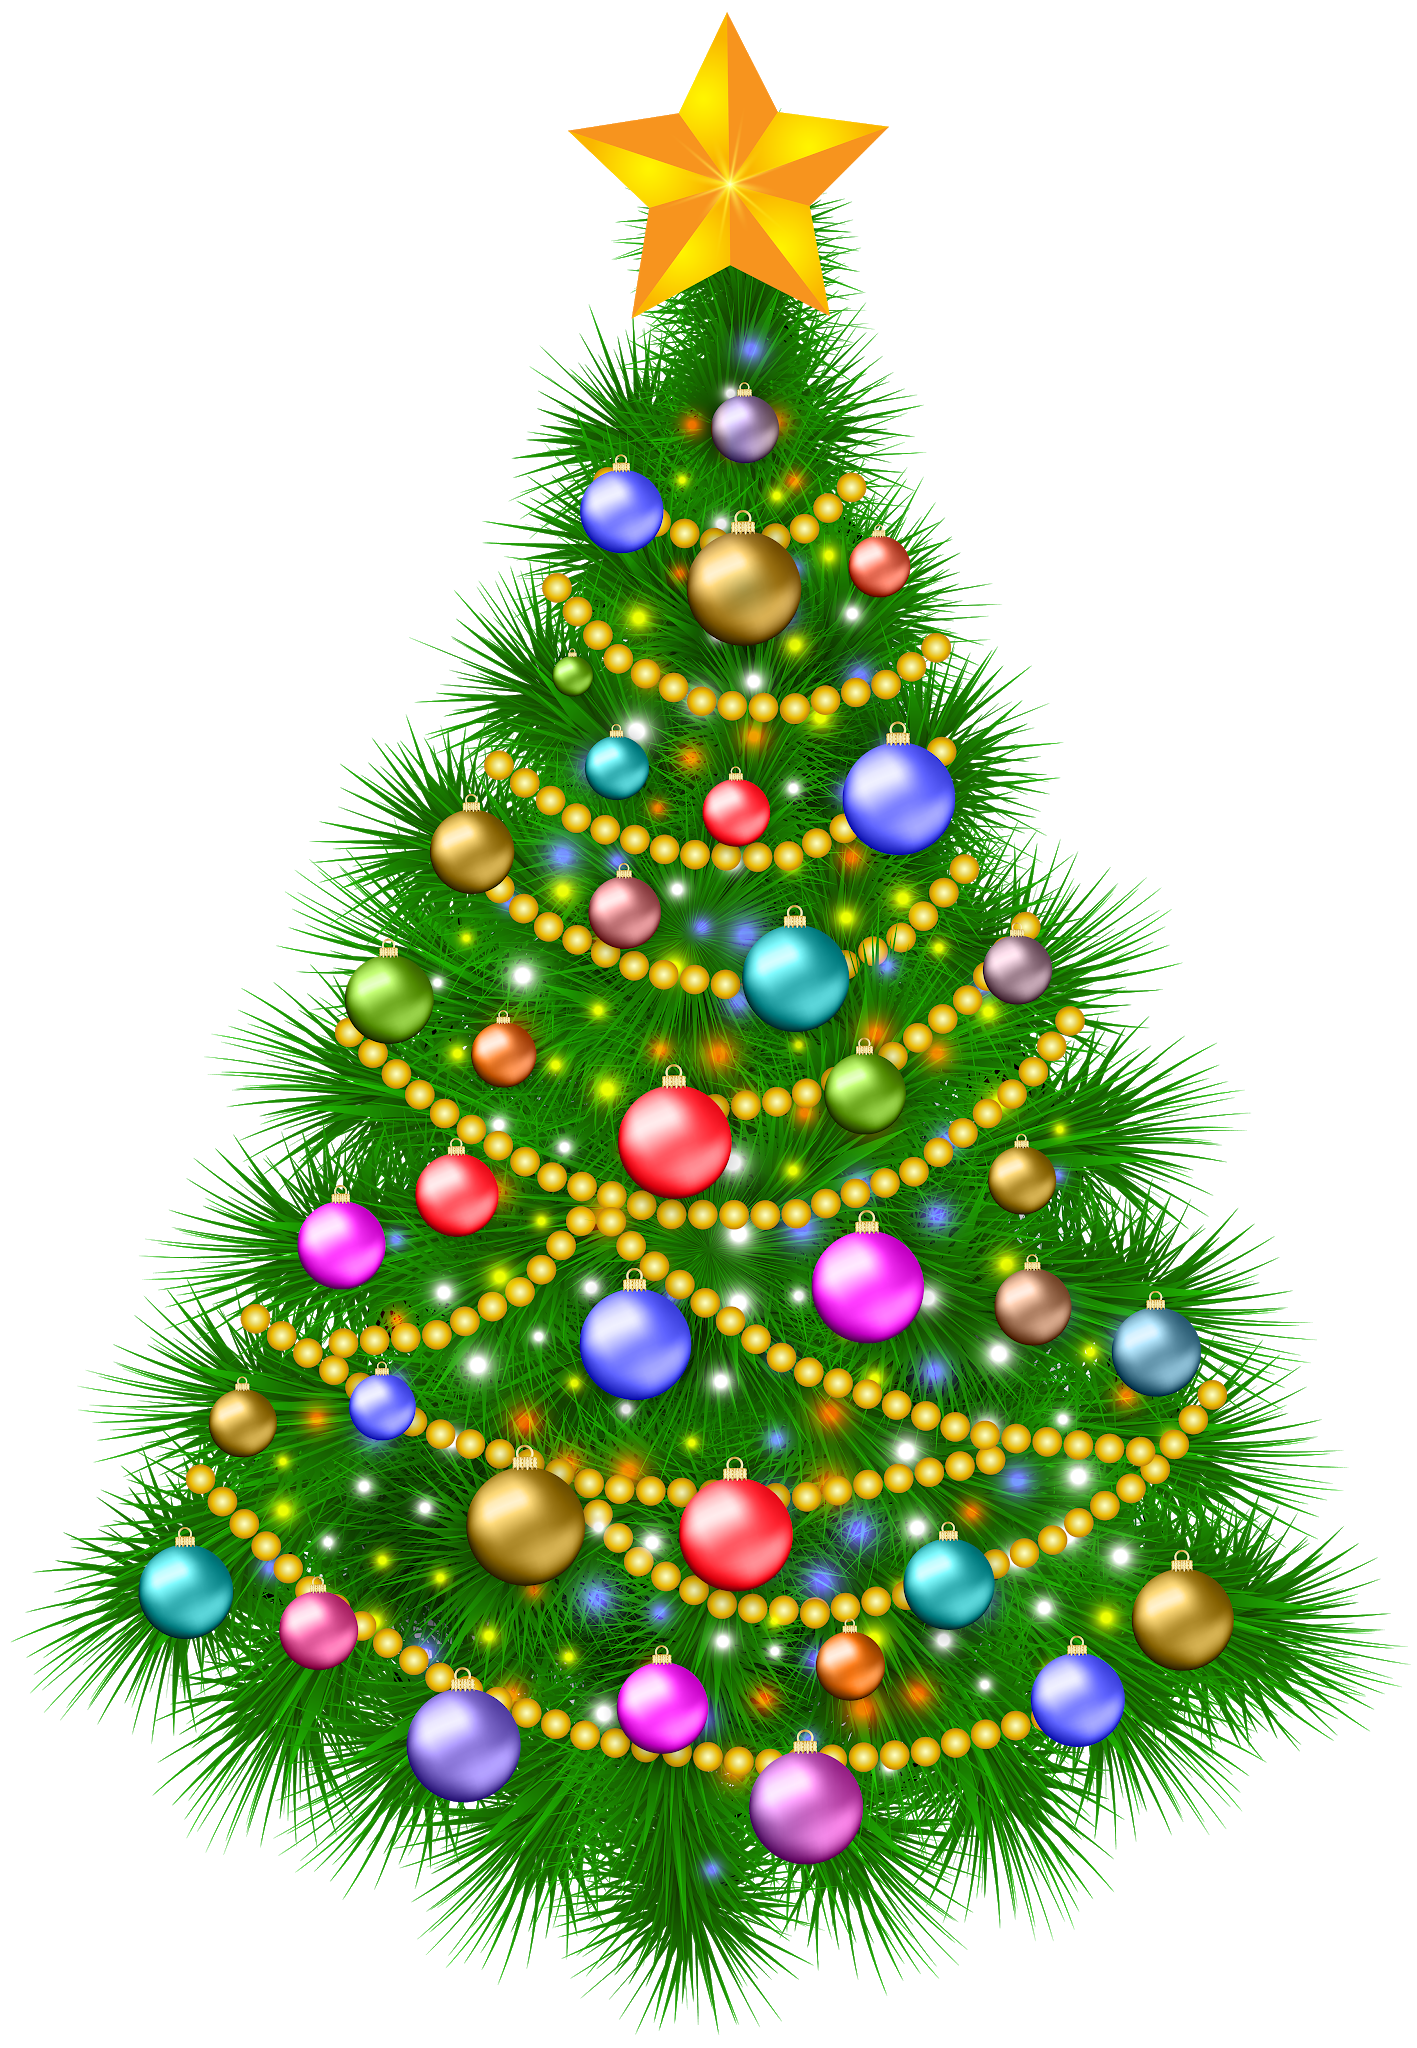 Pin by pngsector on Christmas PNG & Christmas Transparent.